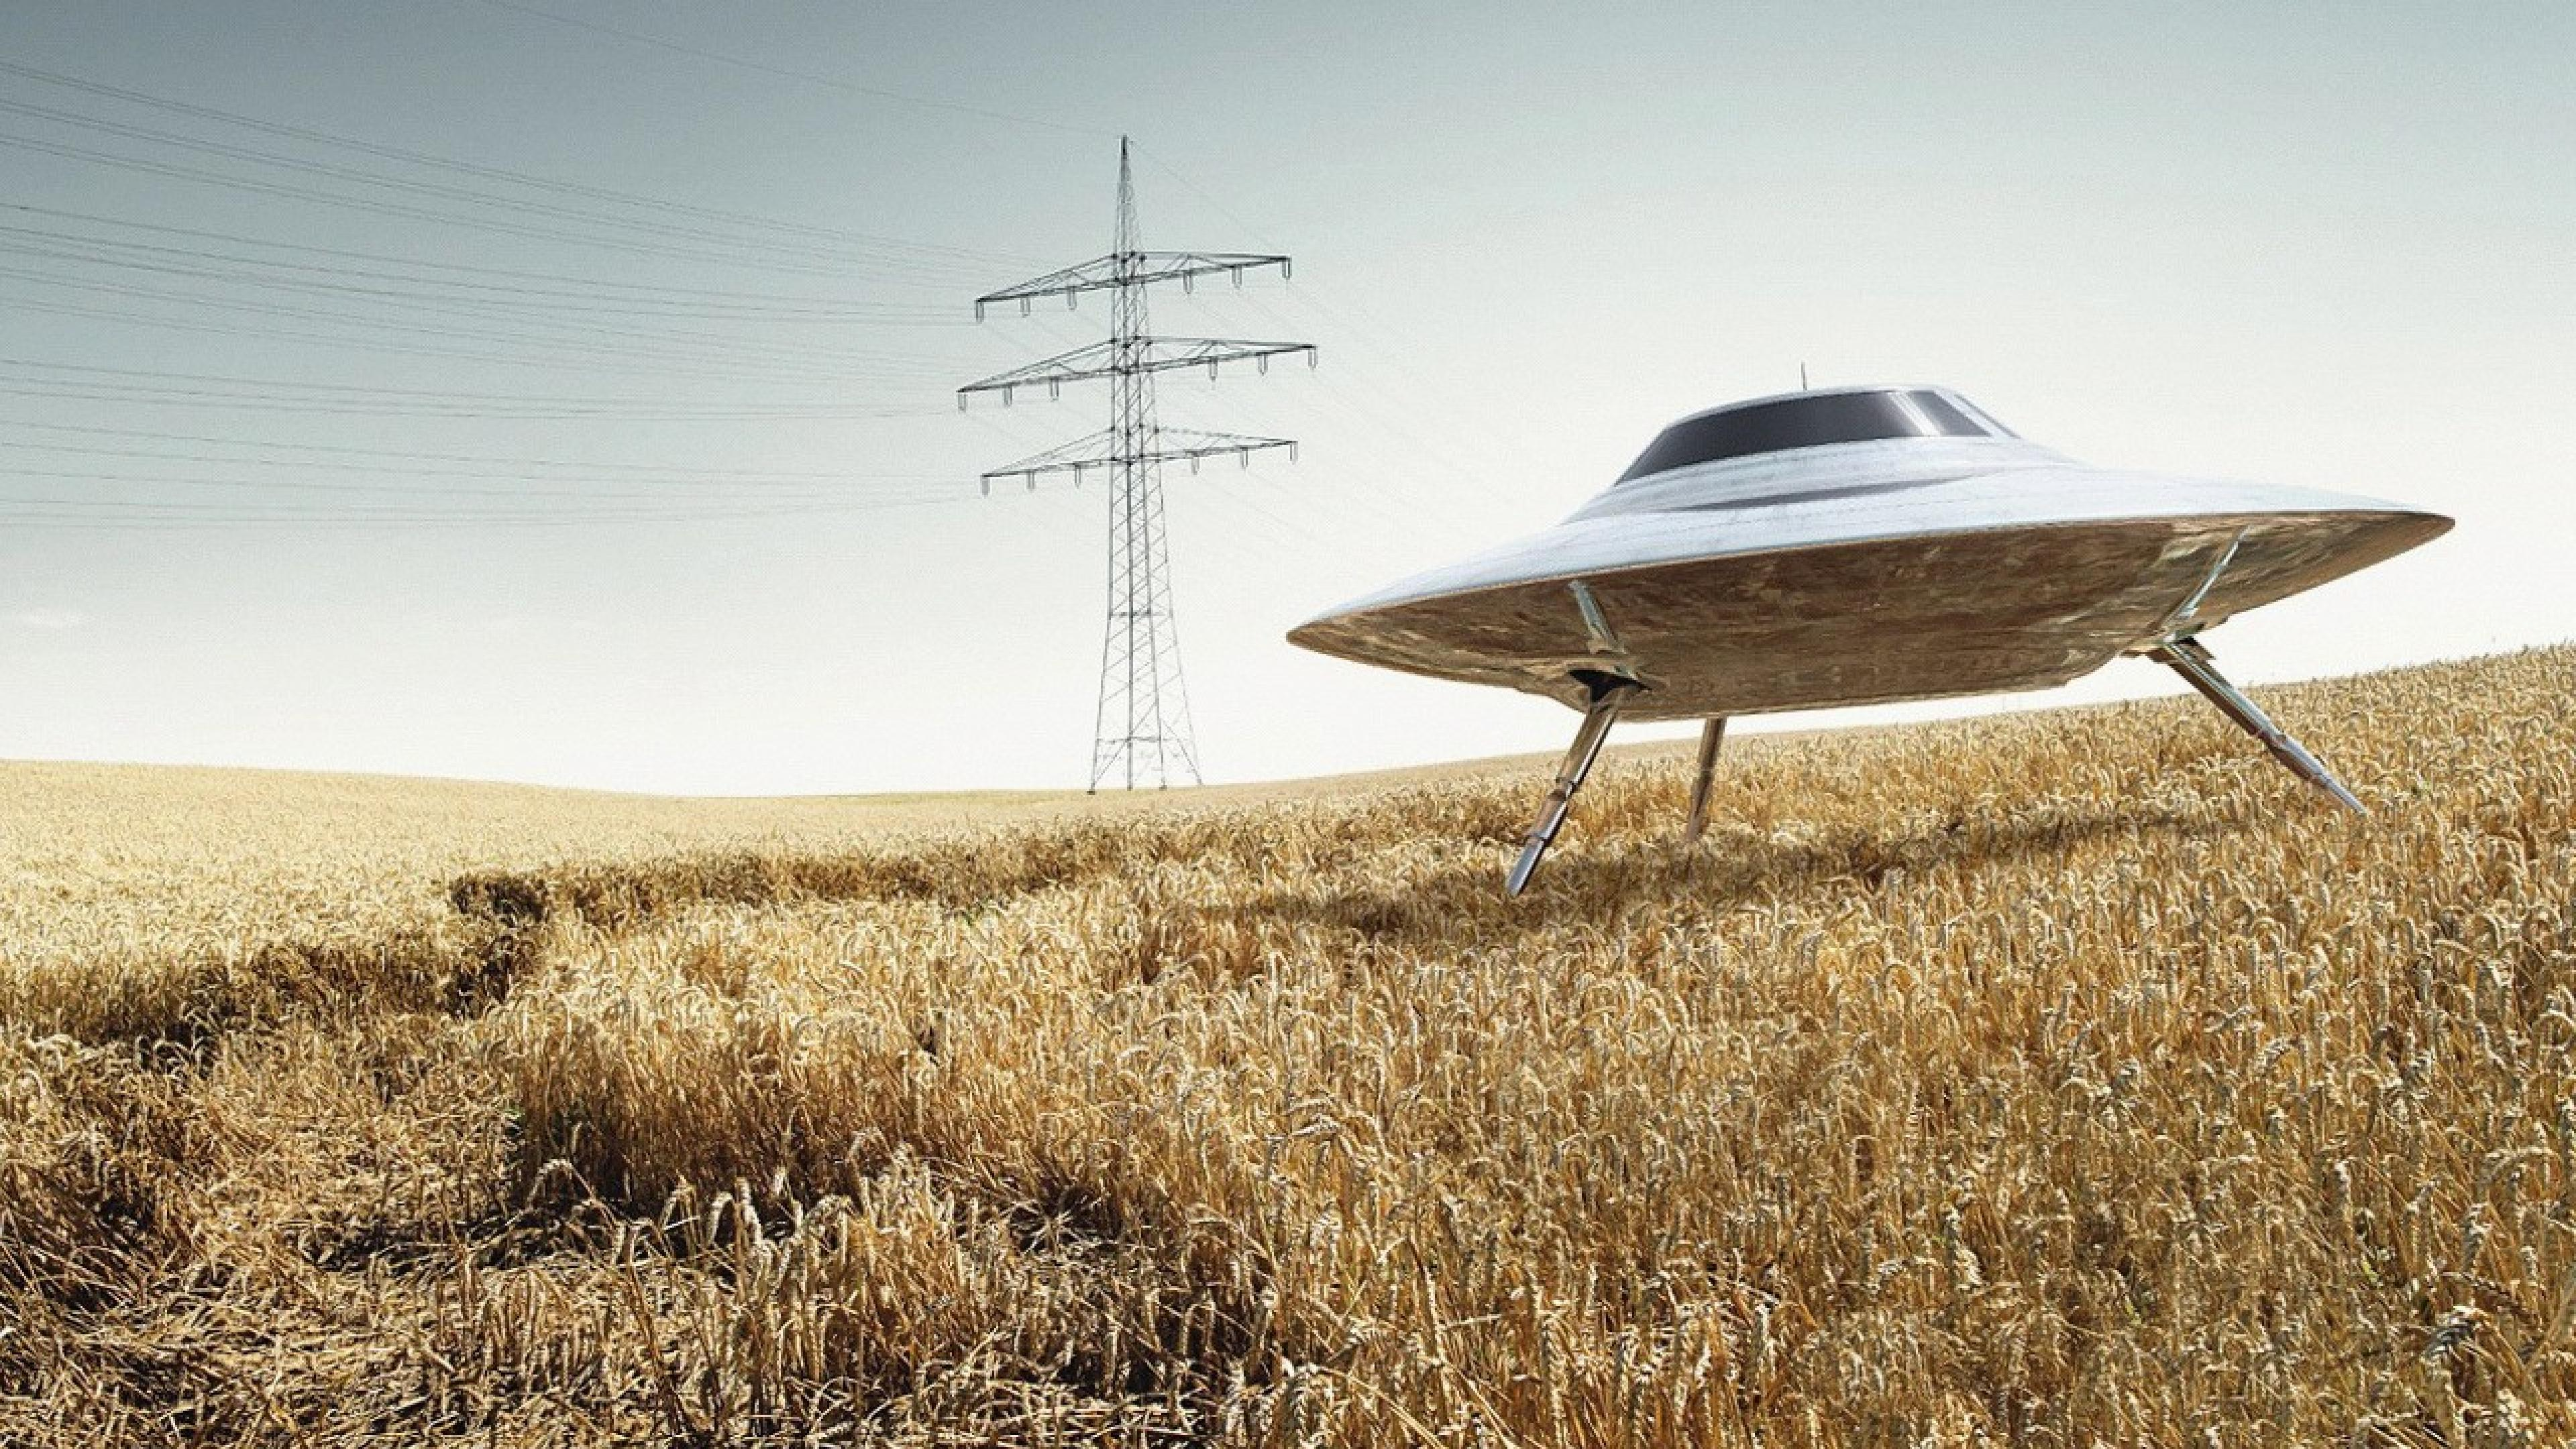 UFO Wallpaper HD  Full Pictures